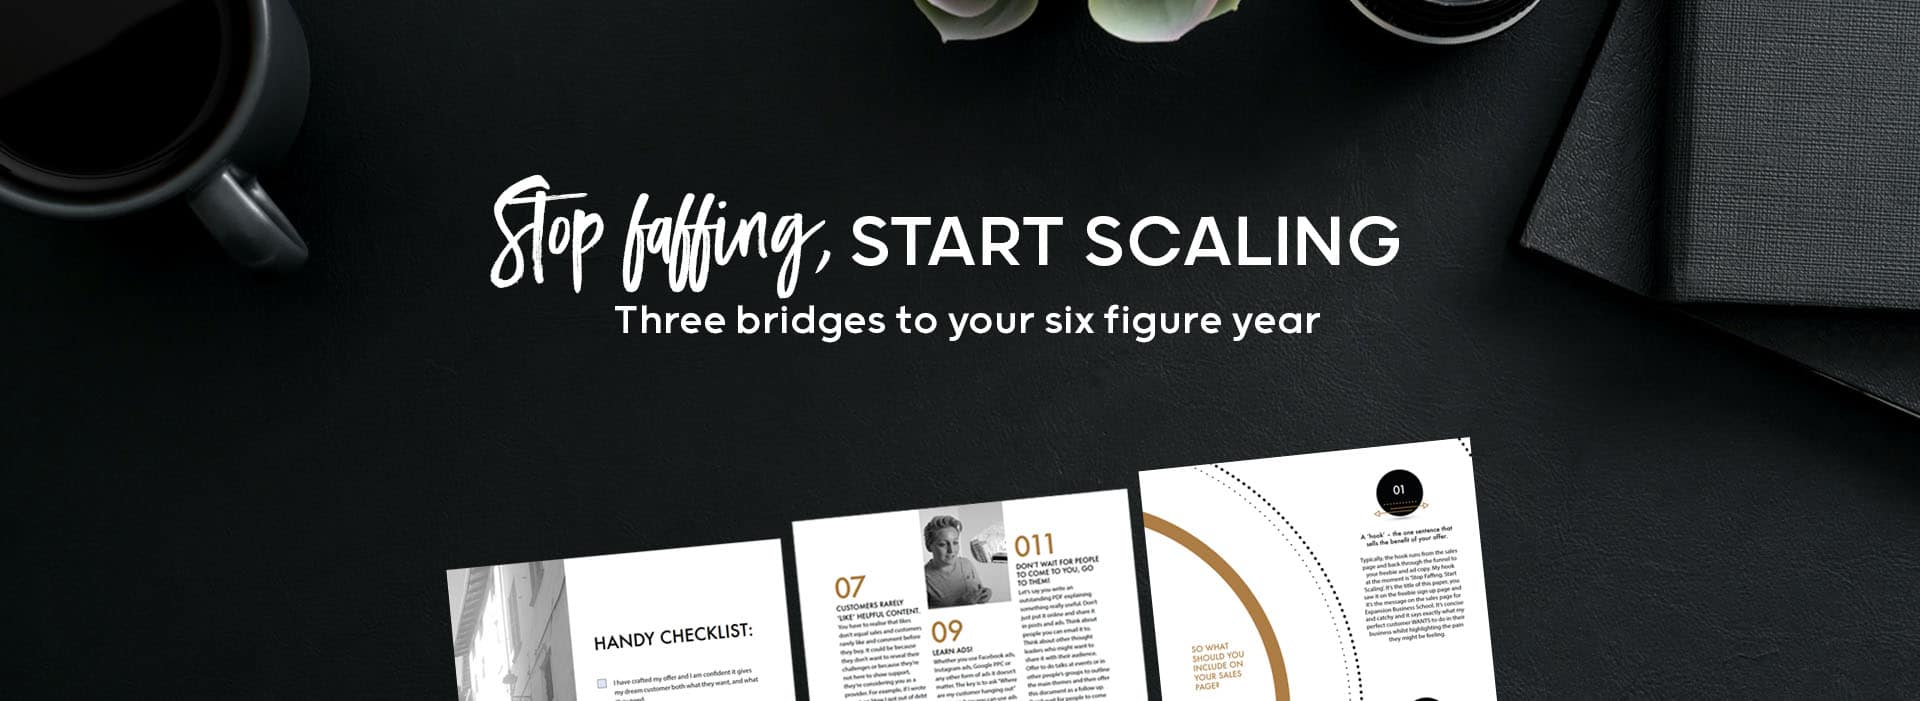 How to scale up to six figures